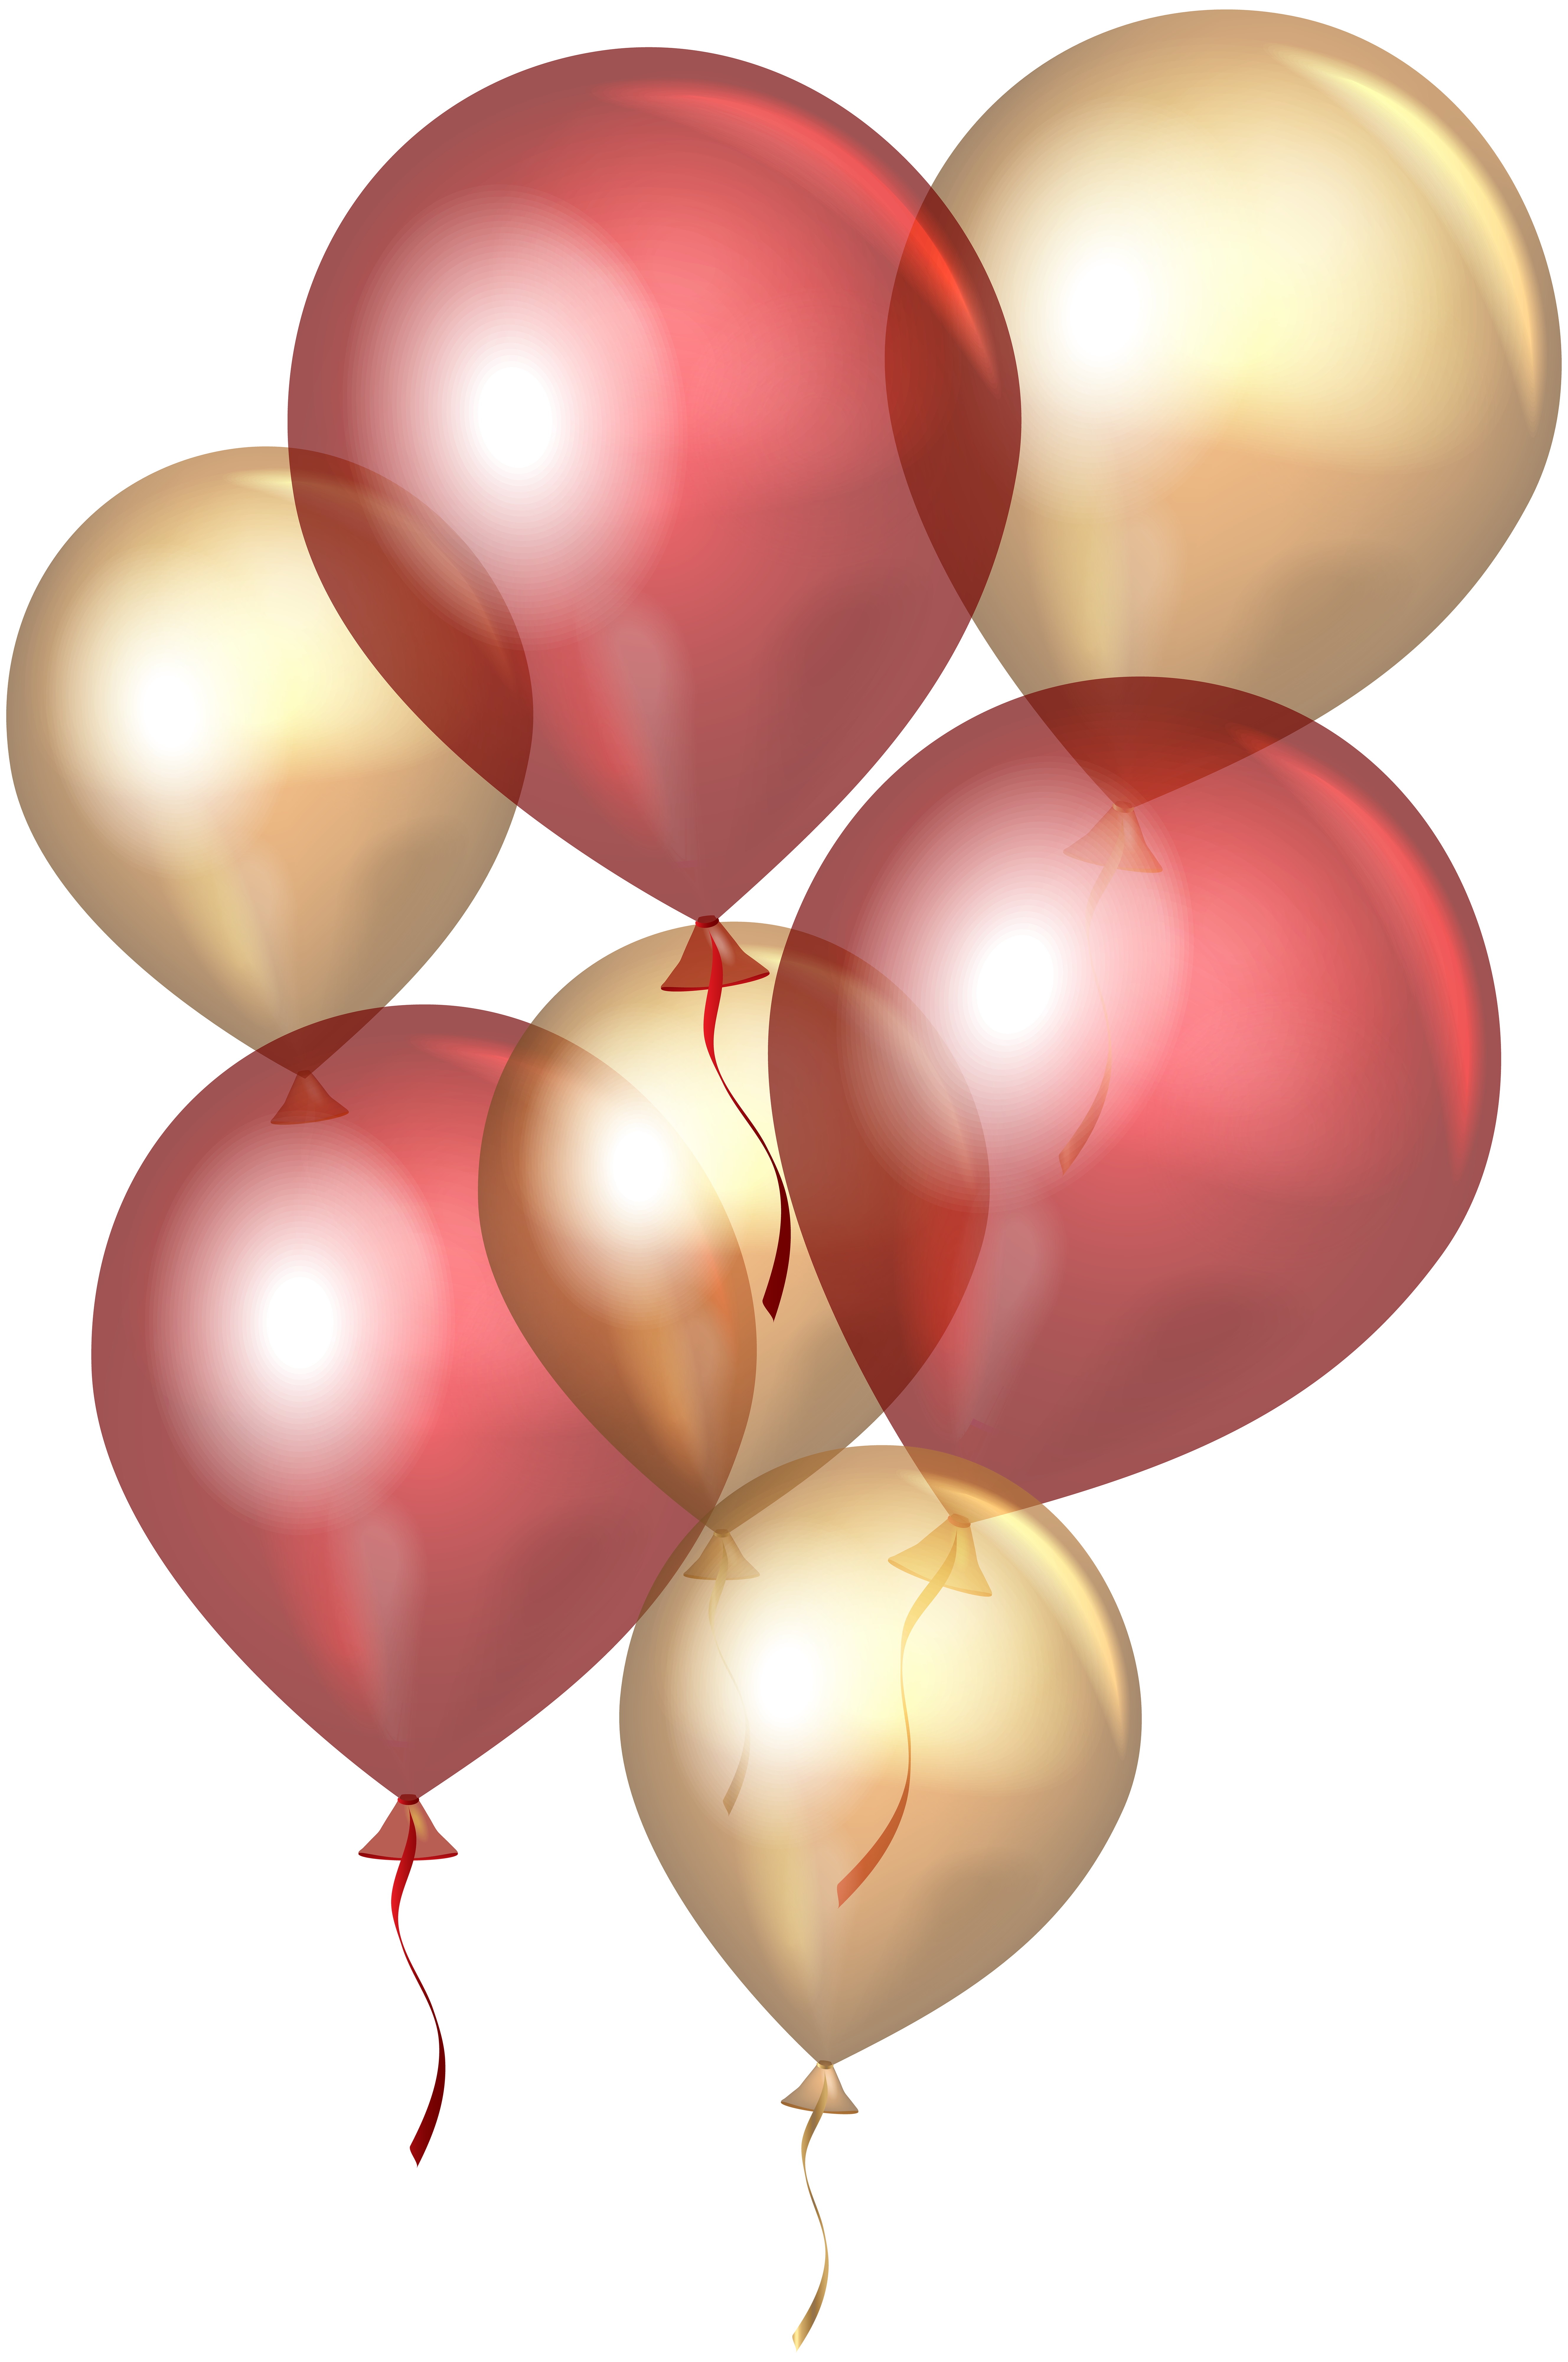 Gold balloons png. Transparent red clip art